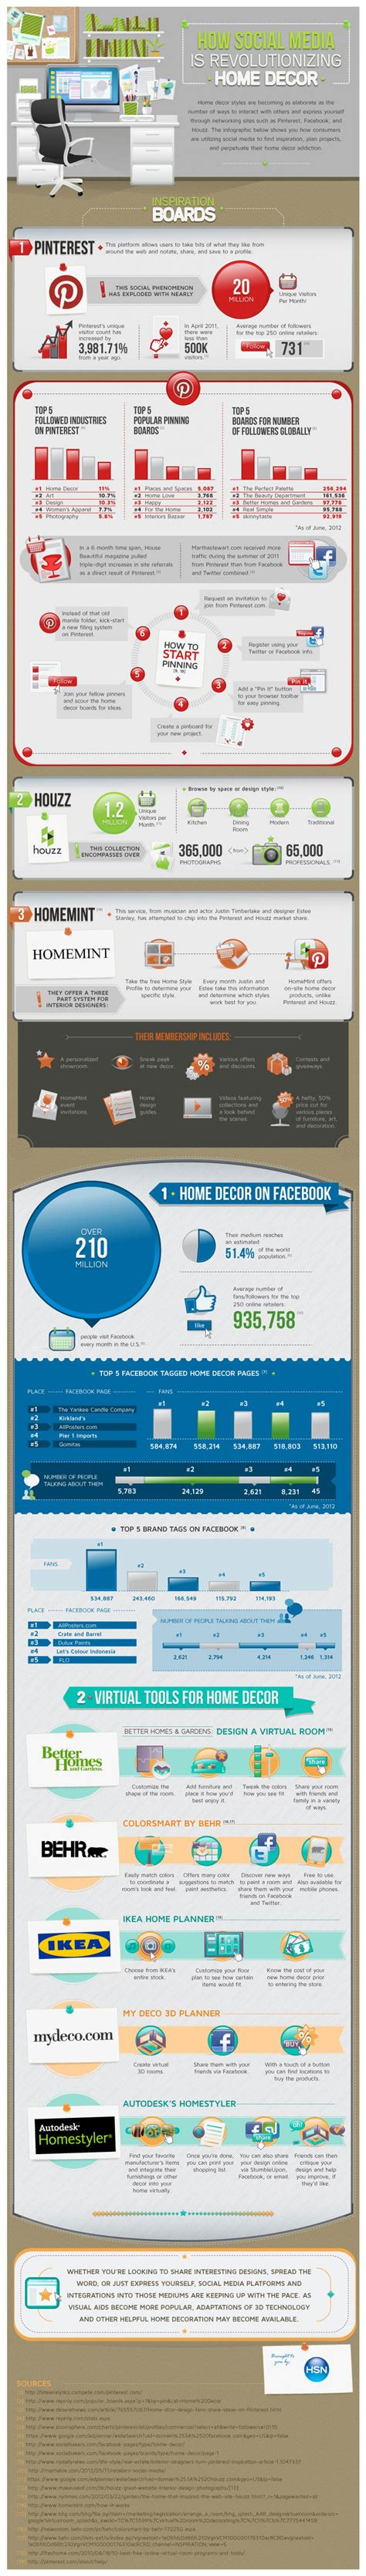 home decor infographic how social media is revolutionizing home decor visual ly